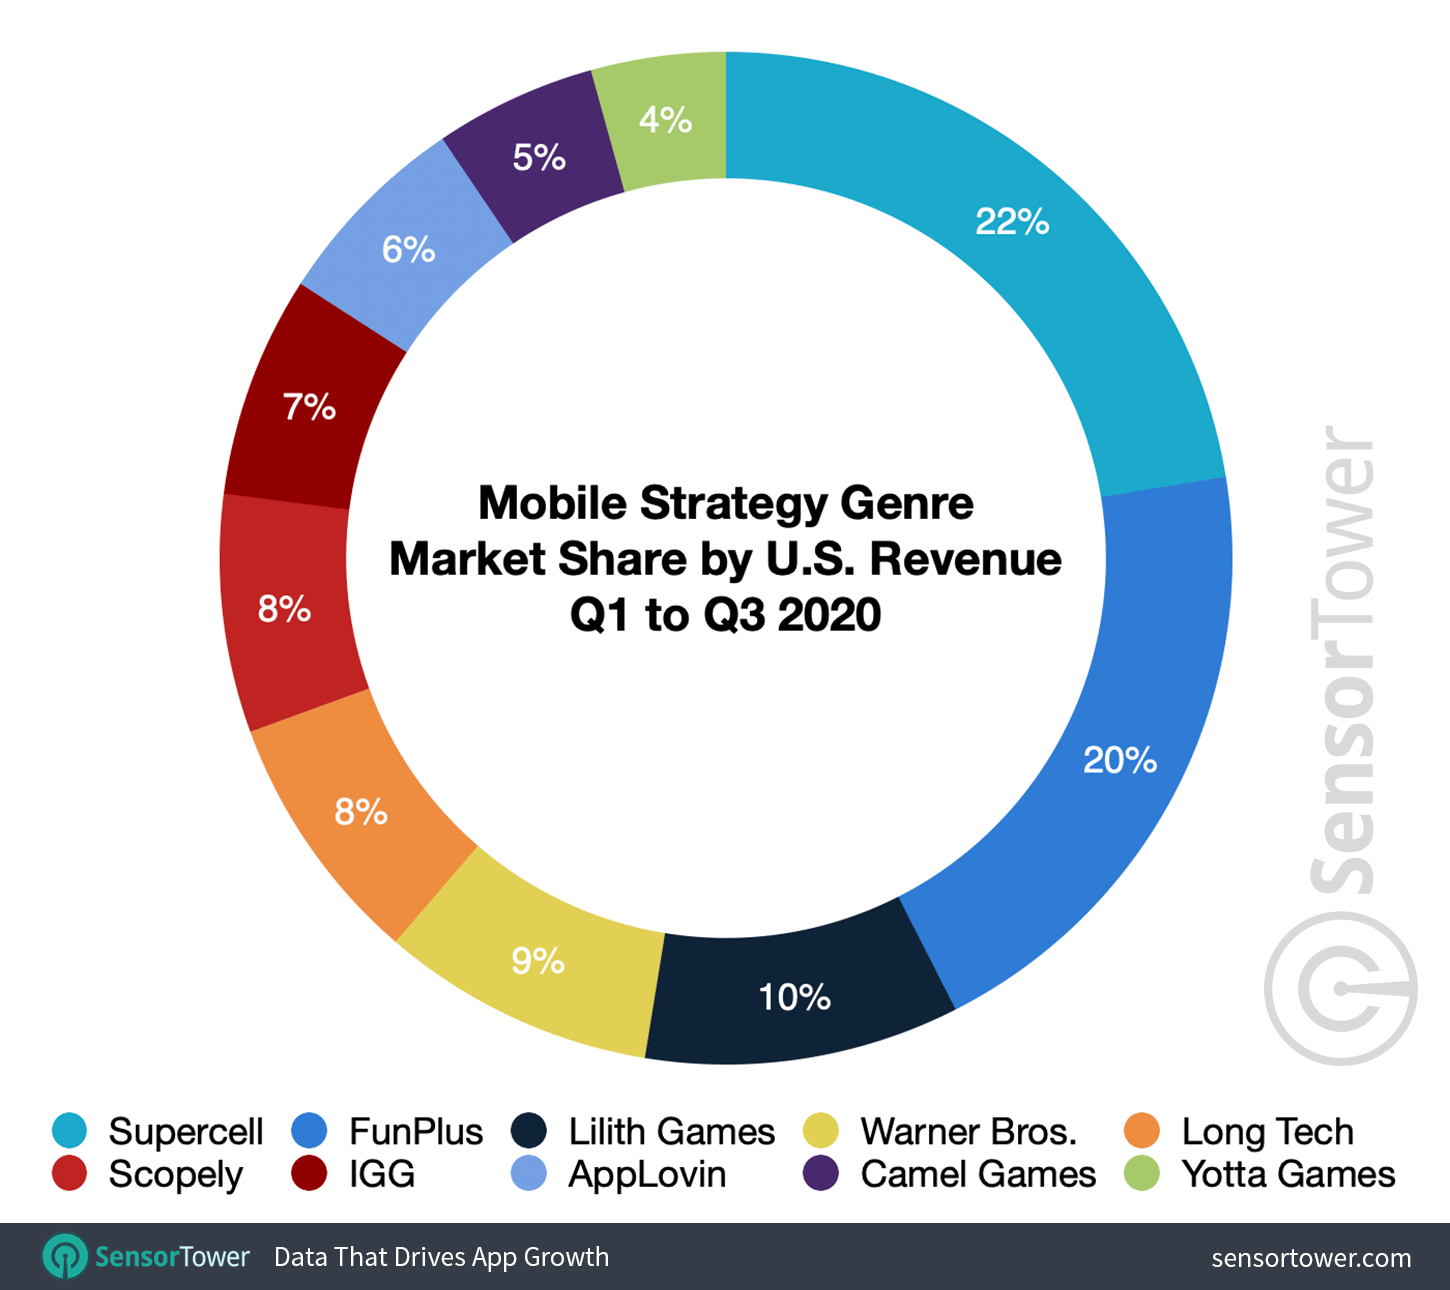 Mobile Strategy Genre Market Share by U.S. Revenue for Q1 to Q3 2020